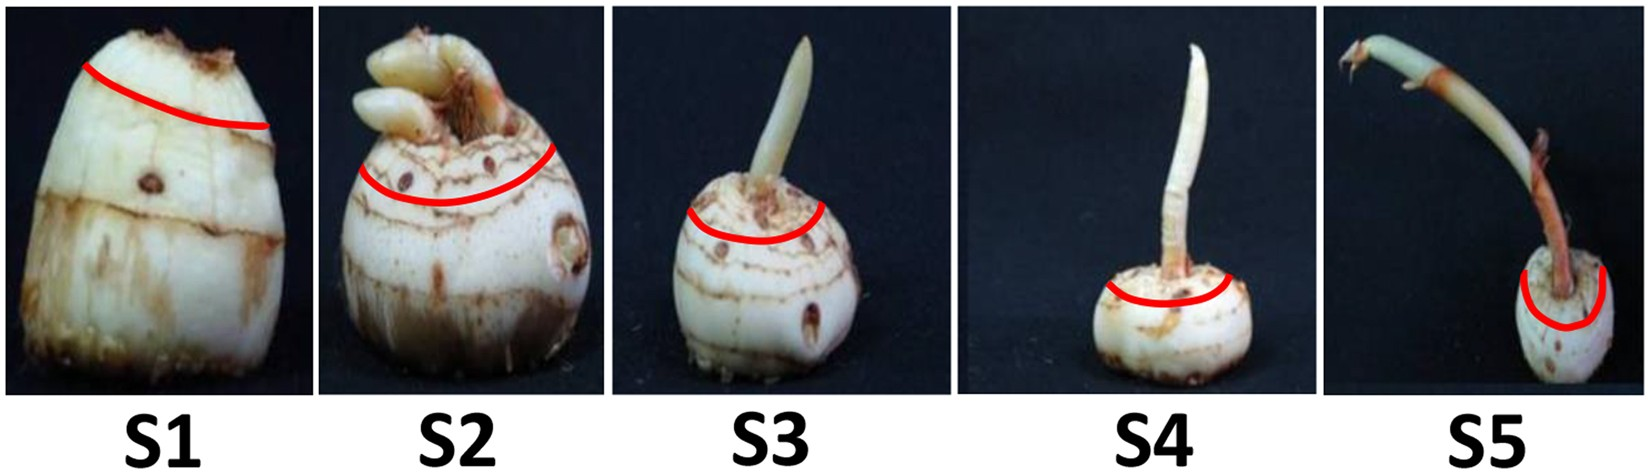 9b7c18b241e8a2 Metabolic shift in sugars and amino acids regulates sprouting in Saffron  corm